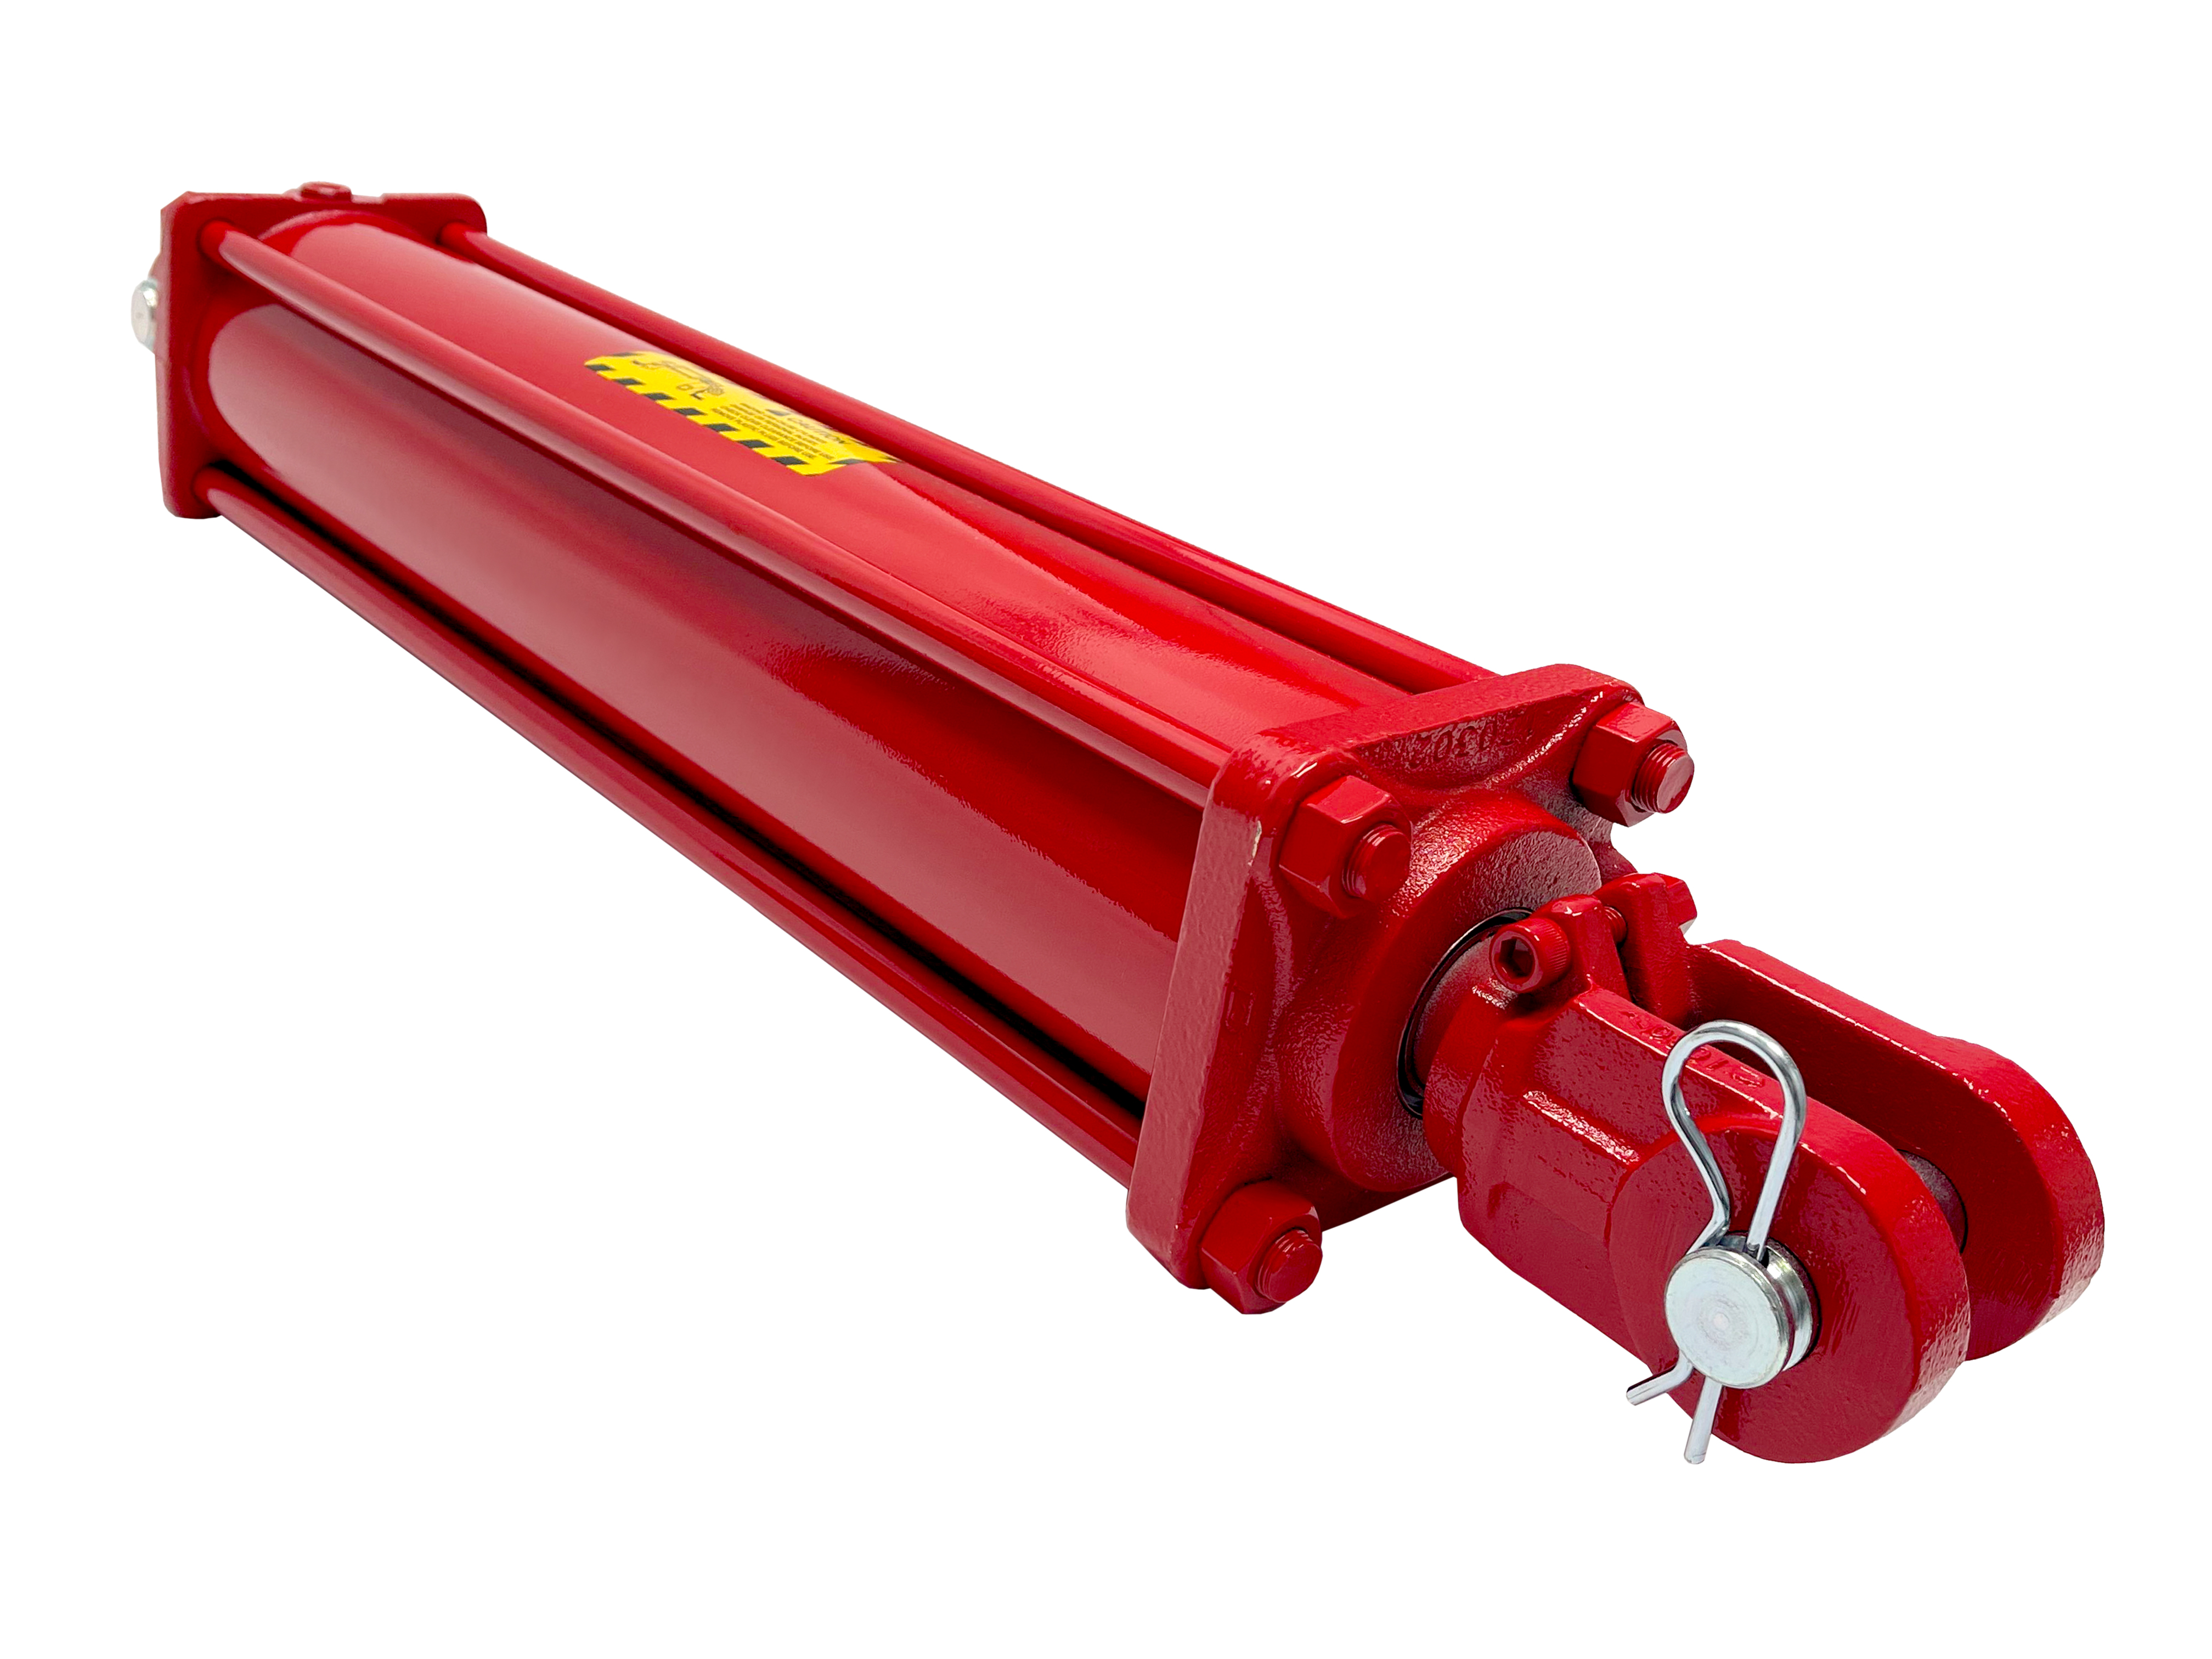 5 bore x 18 stroke CROSS hydraulic cylinder, tie rod double acting cylinder DB series | CROSS MANUFACTURING